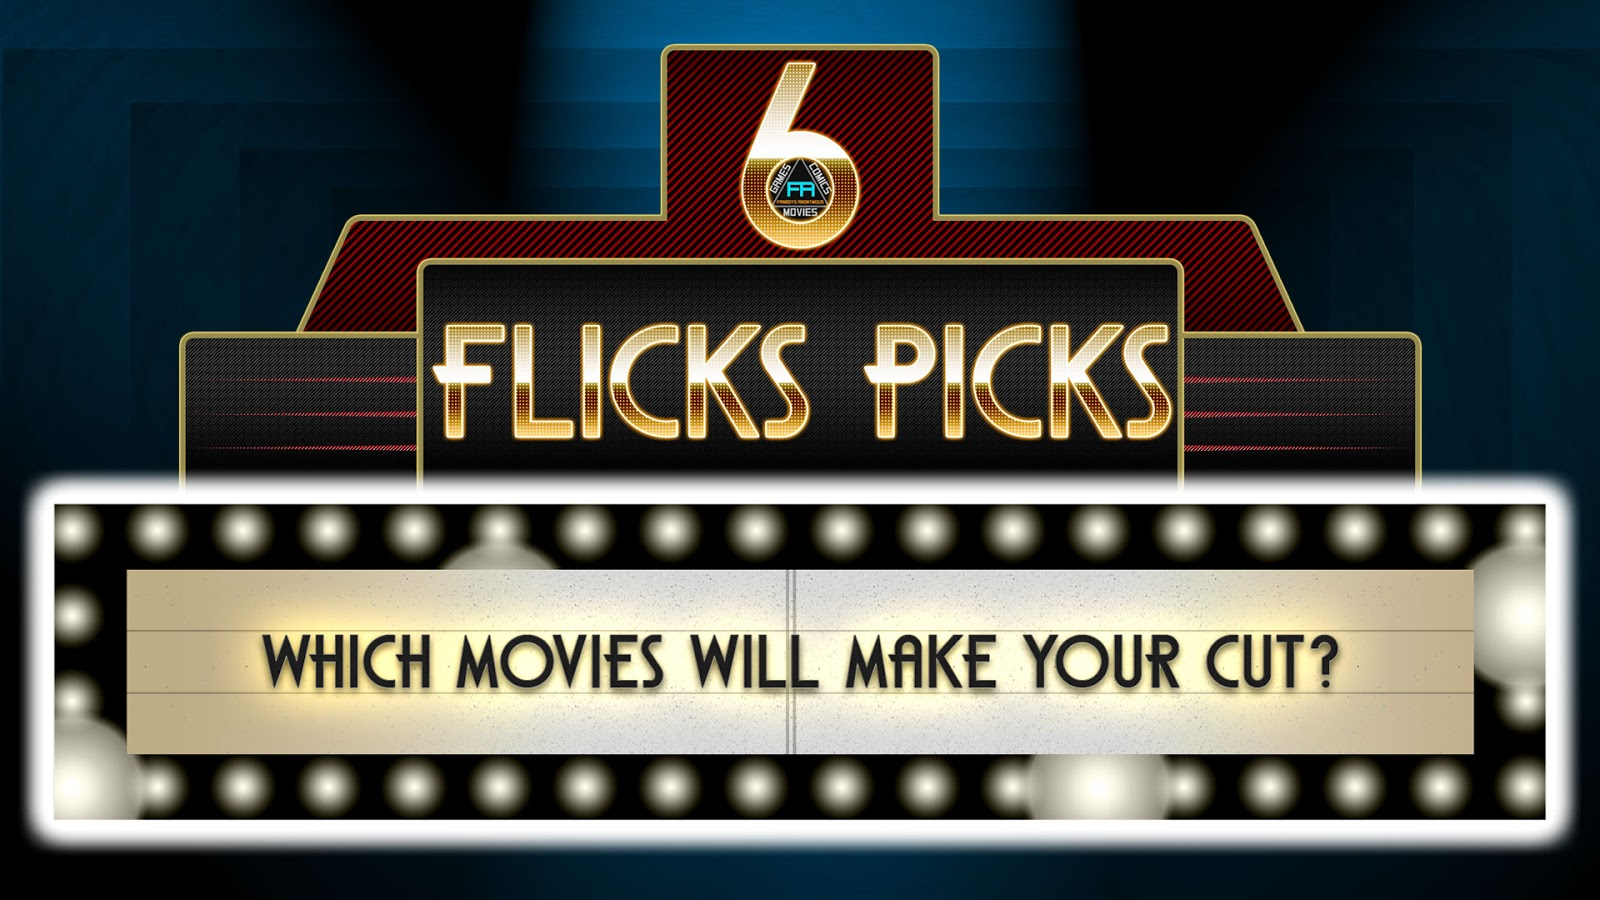 What movies are coming out January 2019 6 Flicks Picks